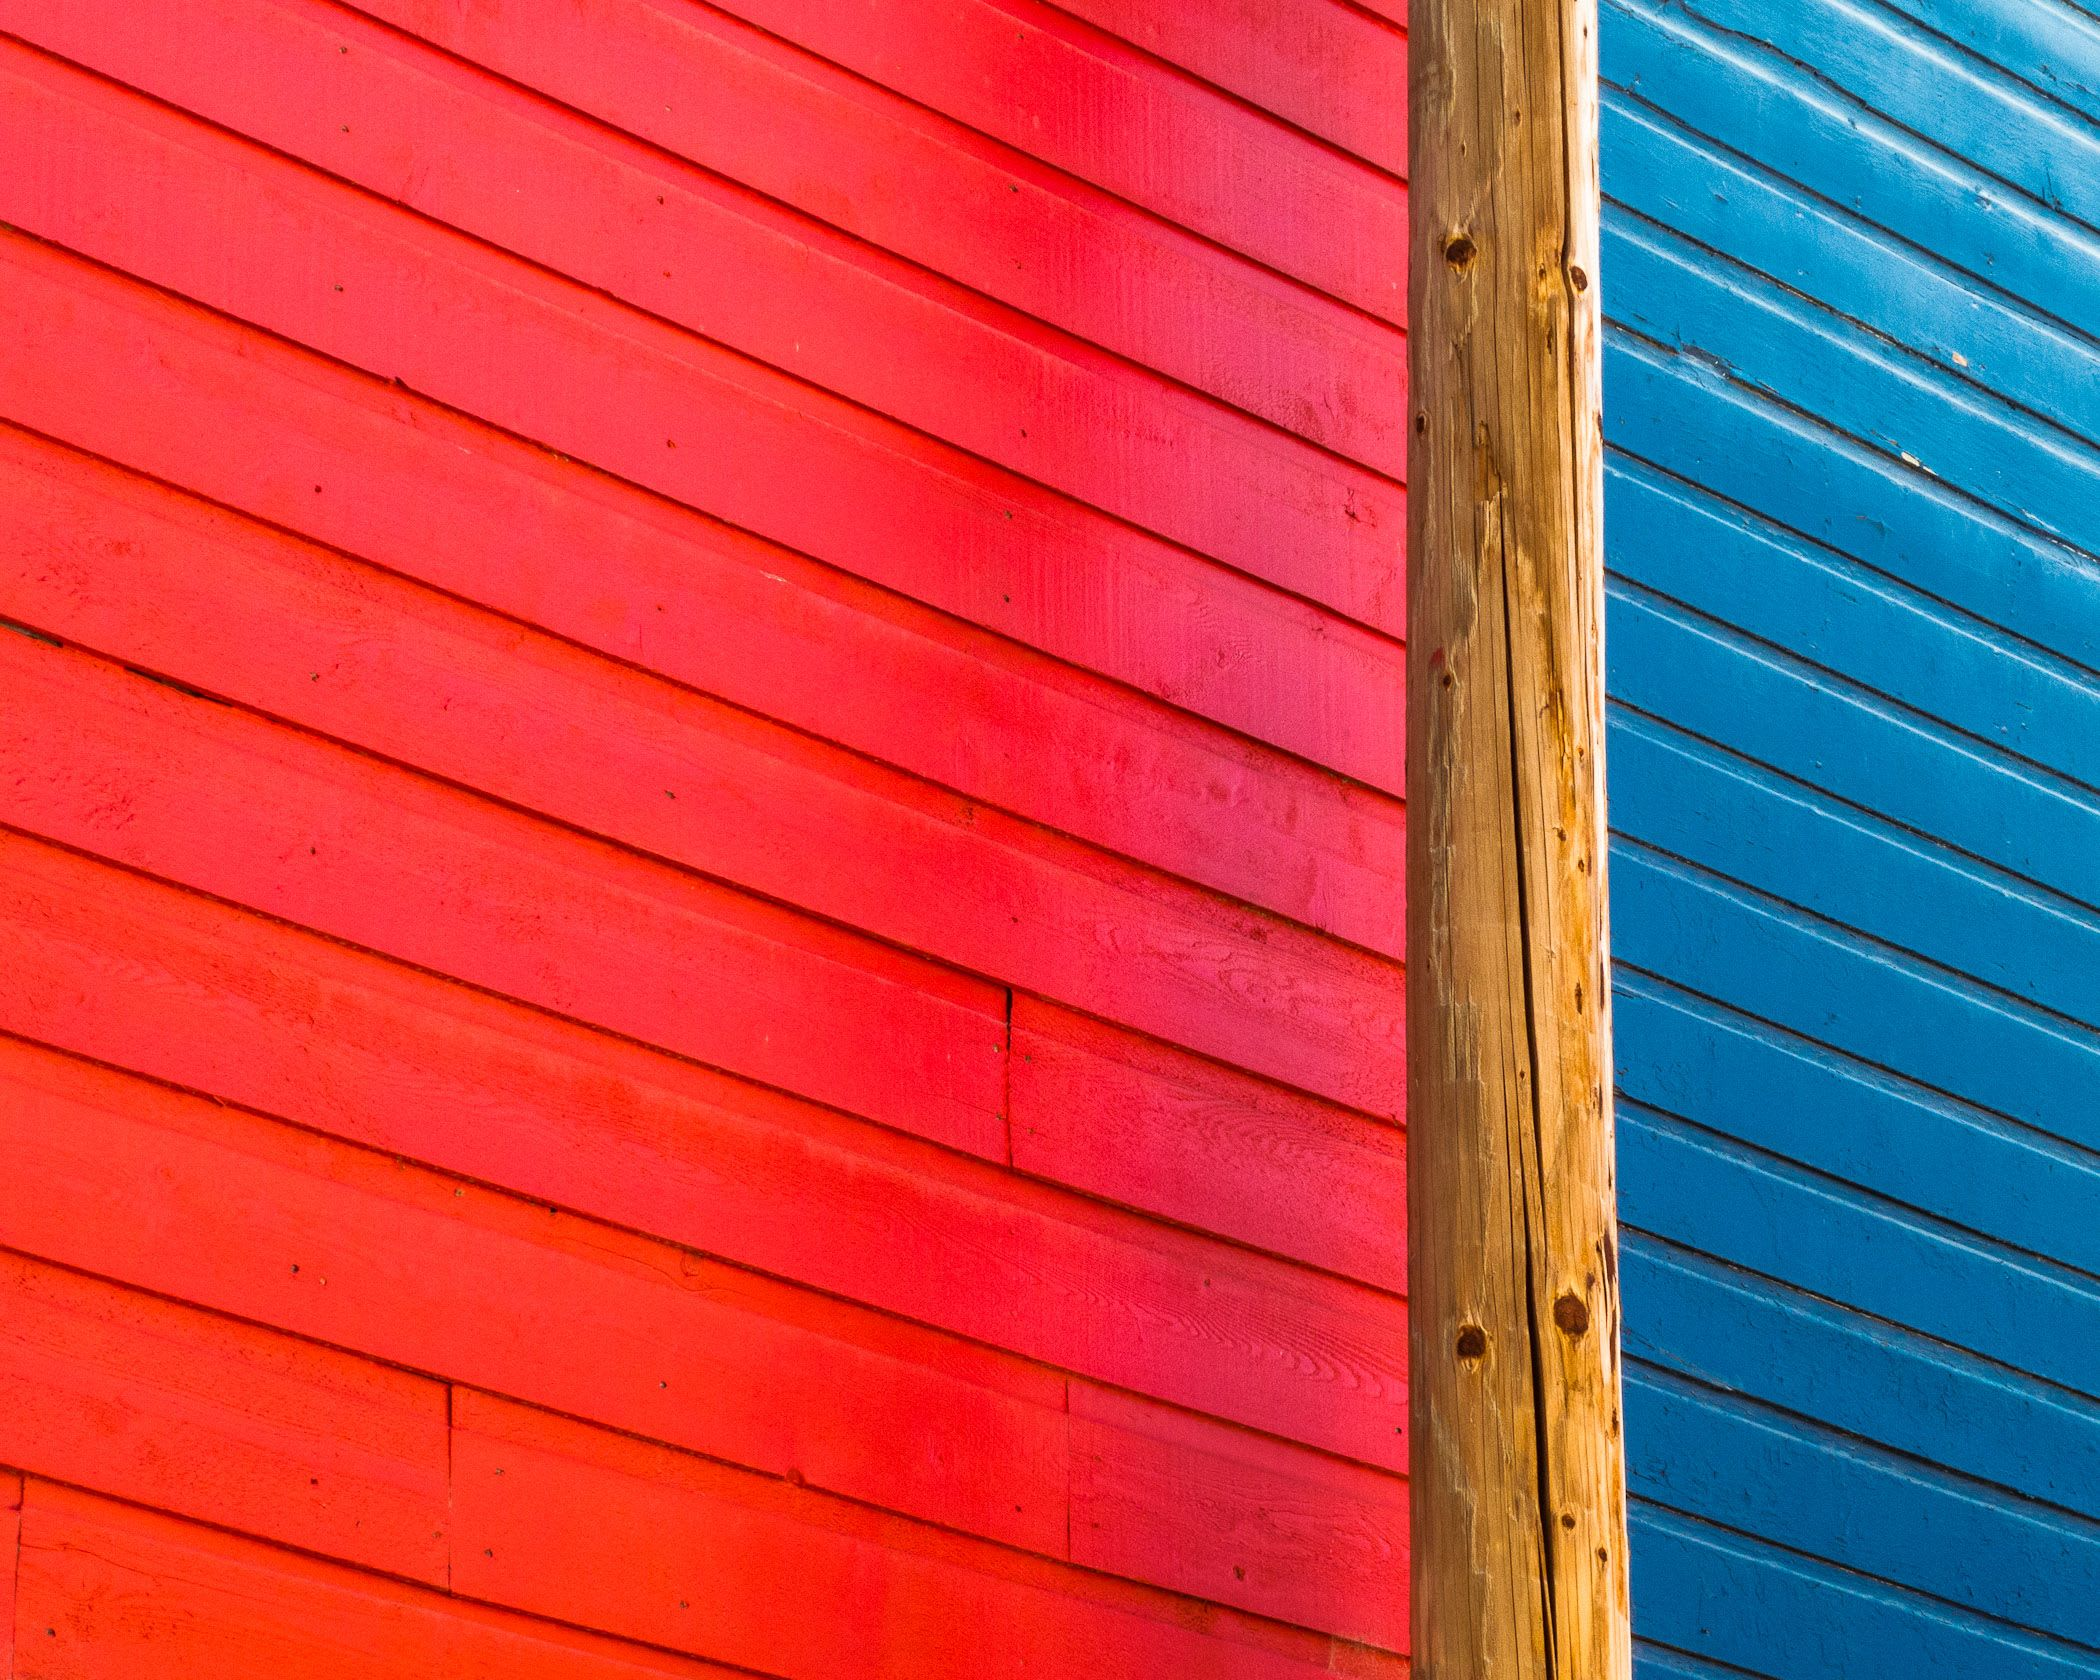 A red and blue wall separated by a telephone pole